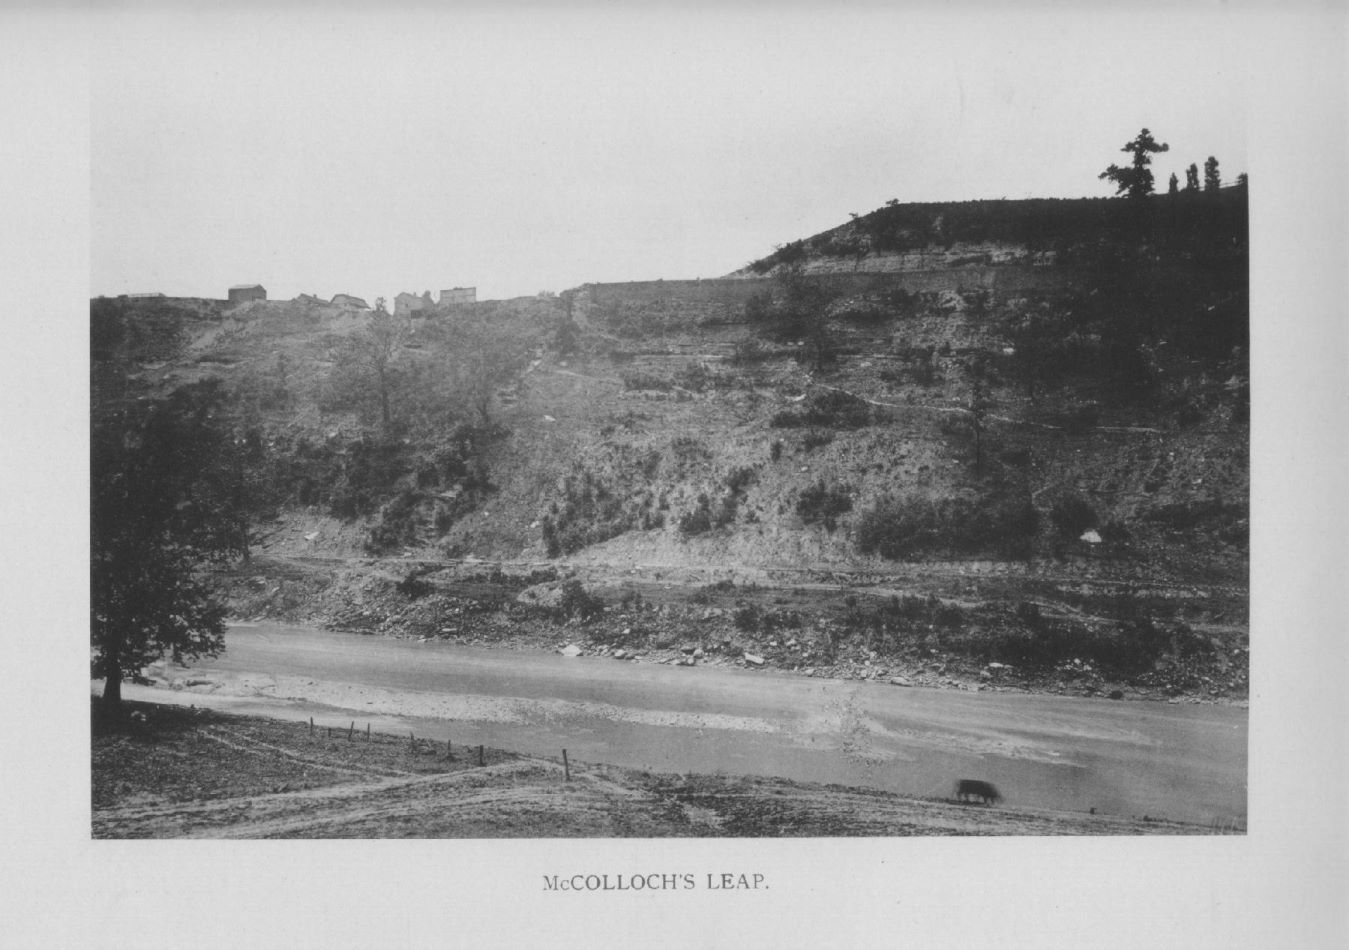 McCulloch's Leap, Wheeling, West Virginia